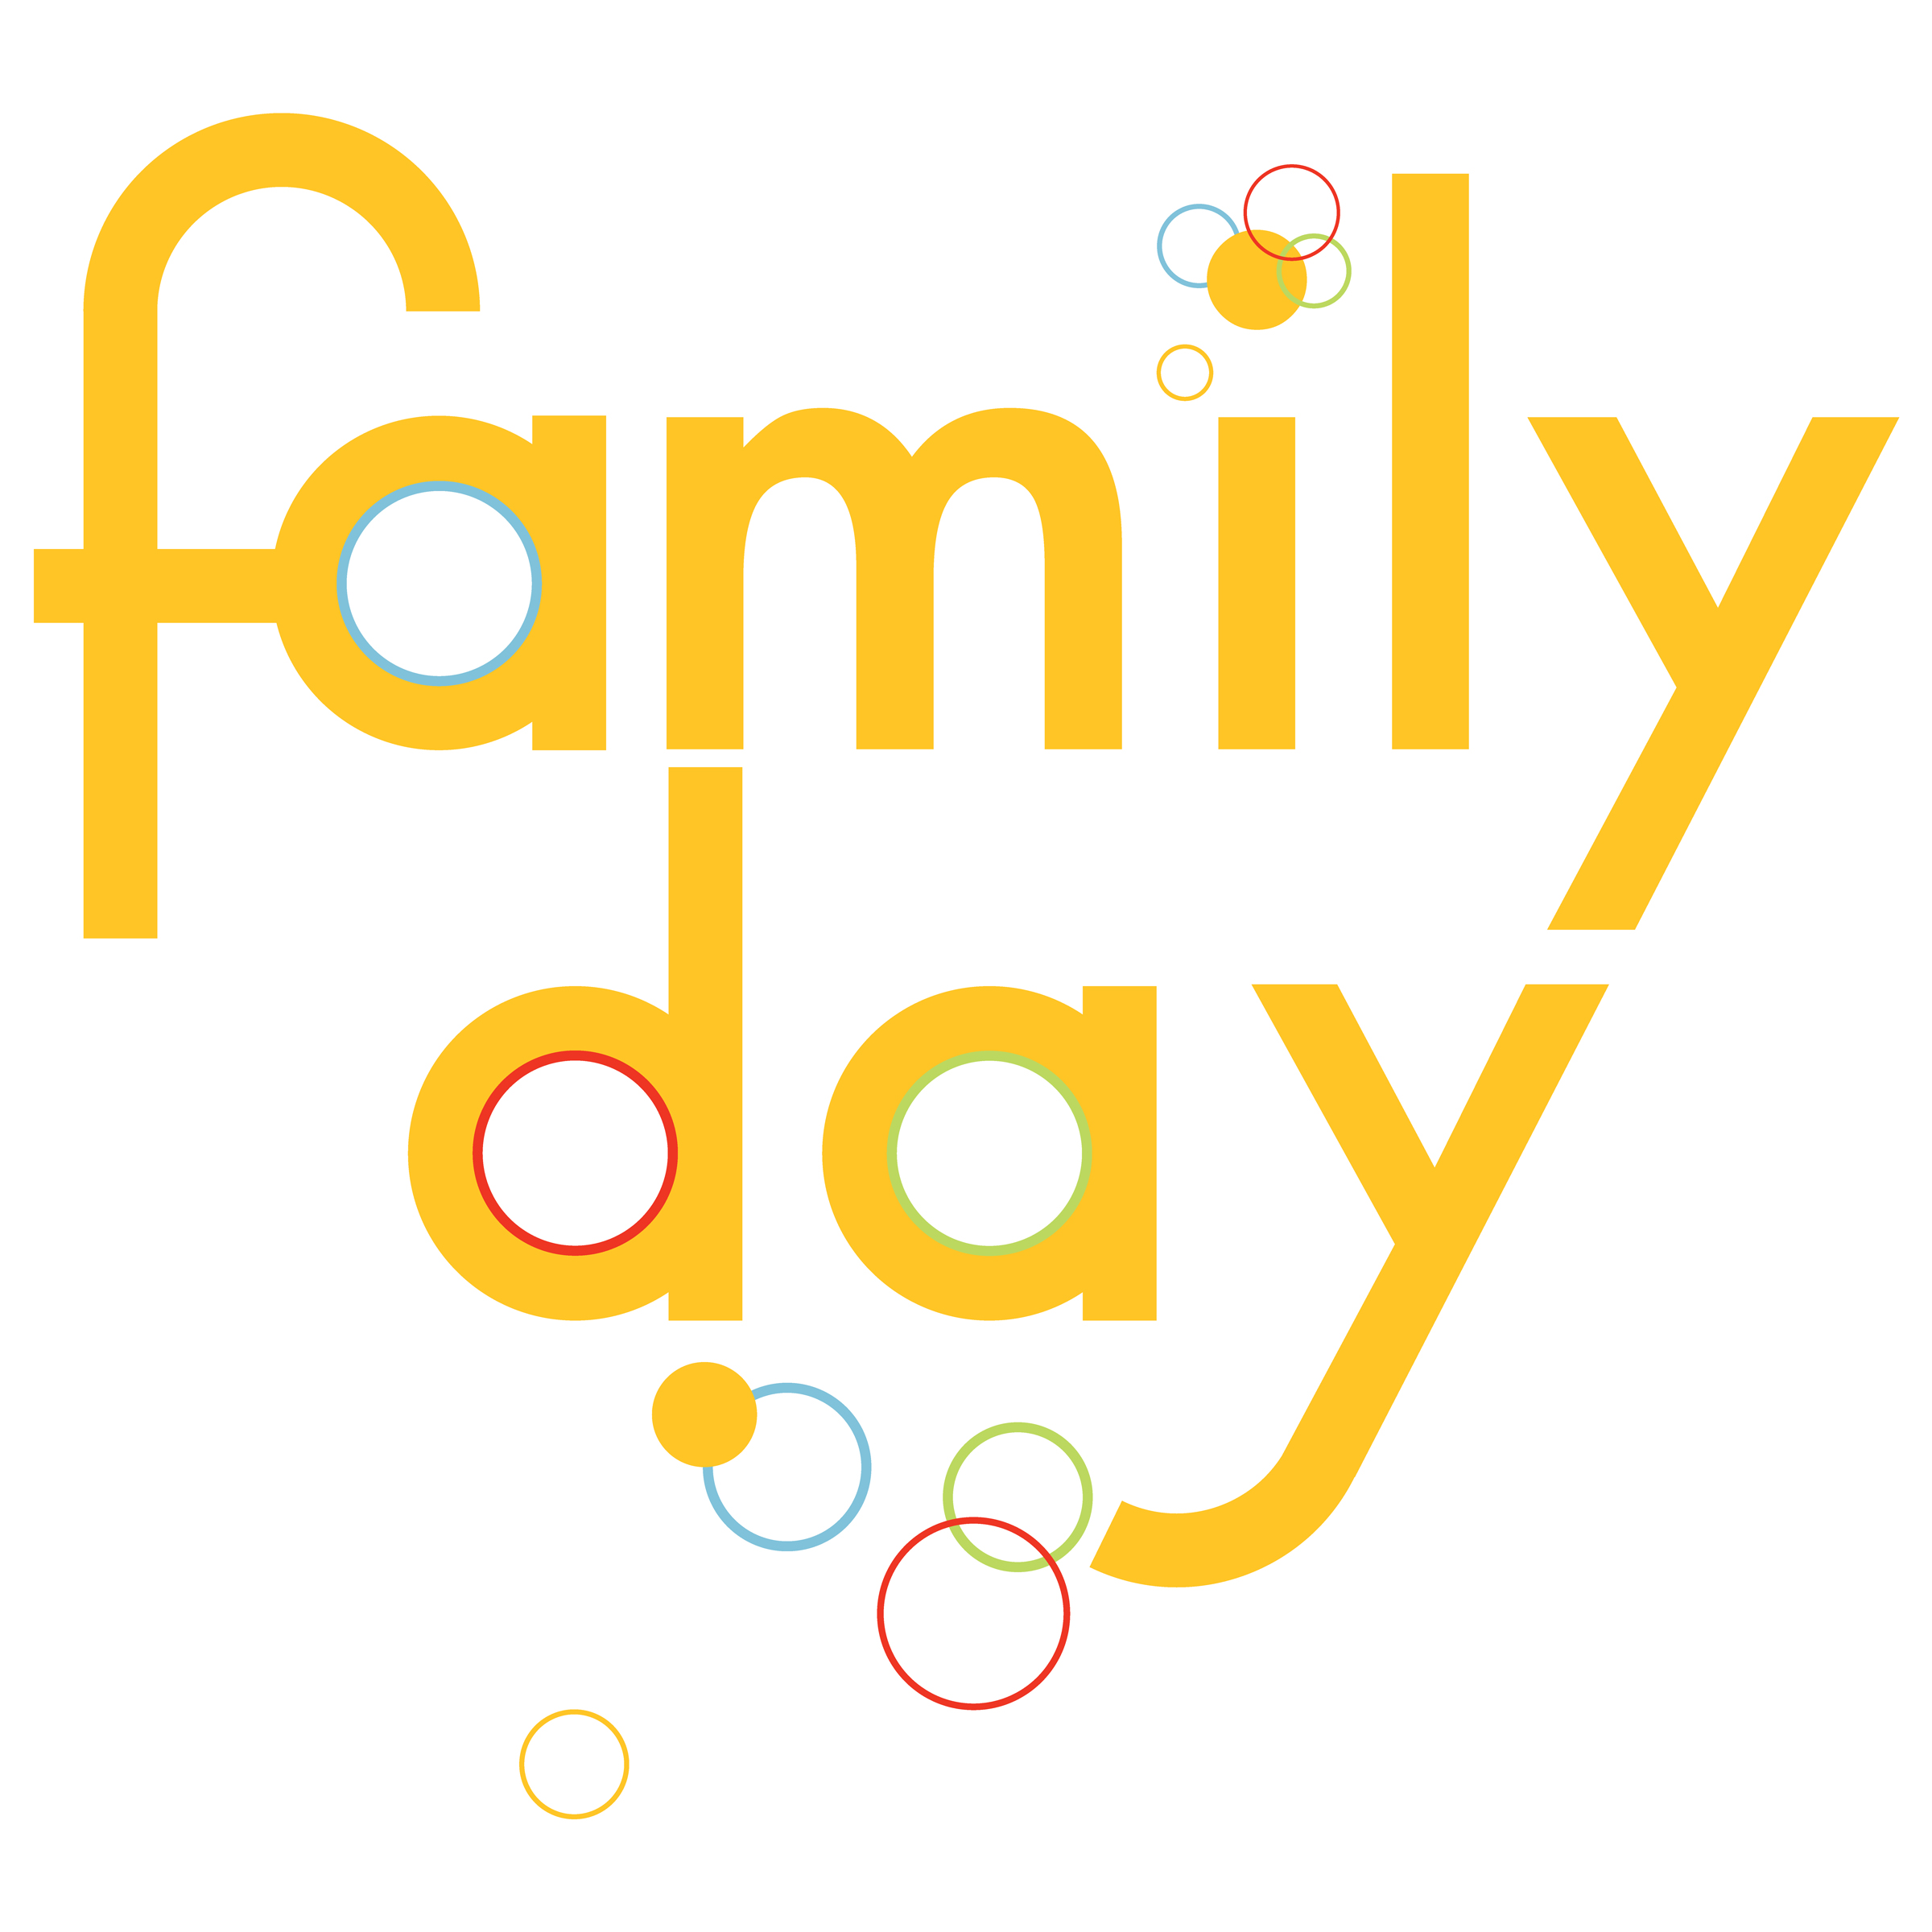 family day 2017 greetings clipart daycare clipart daycare clipart